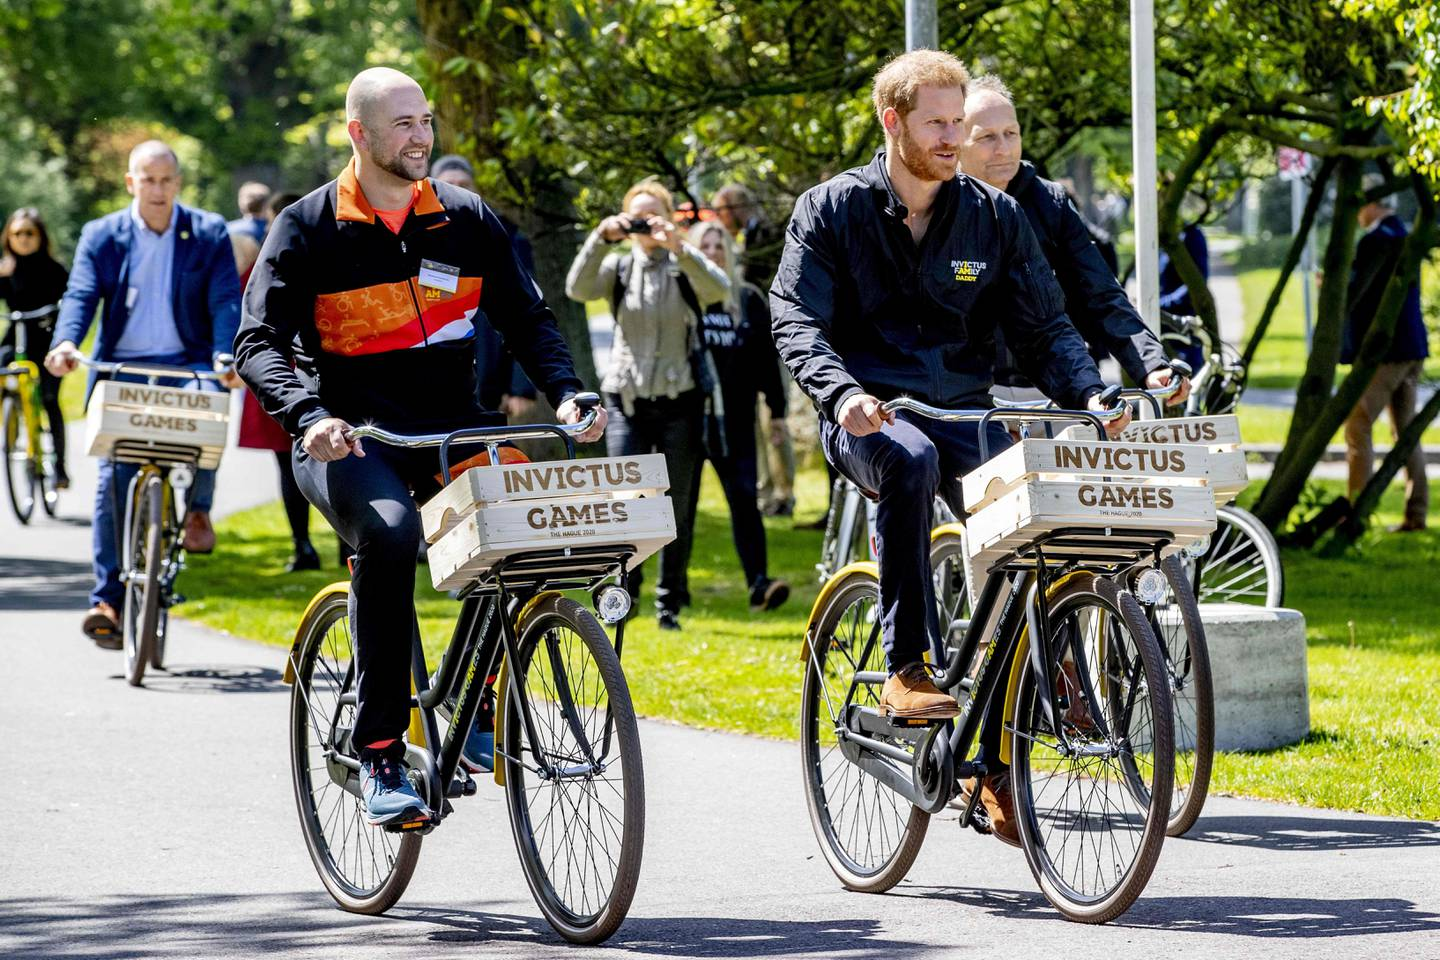 Former Dutch serviceman and athlete Dennis Van Der Stroom (L) and Prince Harry (R) ride a bike during the presentation of the Invictus Games The Hague 2020, in The Hague, Netherlands, on May 9, 2019. - The fifth Invictus Games The Hague 2020, an international sporting event for wounded, injured and sick servicepersonnel, will be held in the Zuiderpark in 2020. (Photo by patrick van katwijk / ANP / AFP) / Netherlands OUT